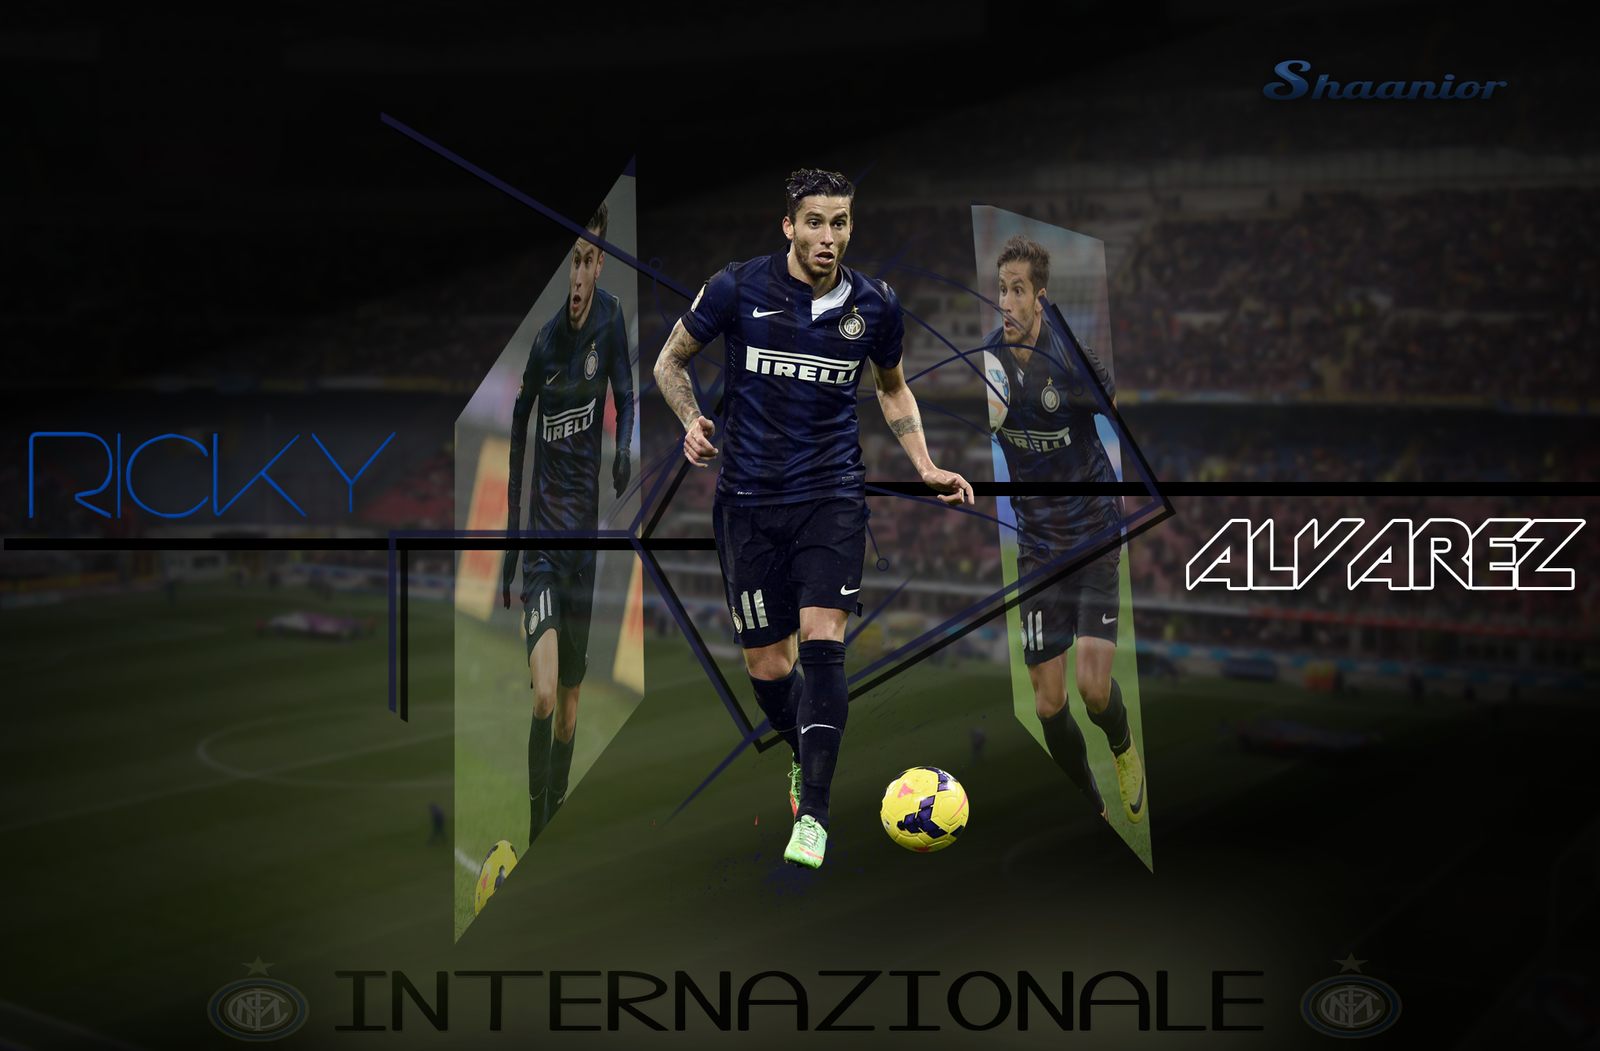 Inter Milan Wallpaper PC Computer